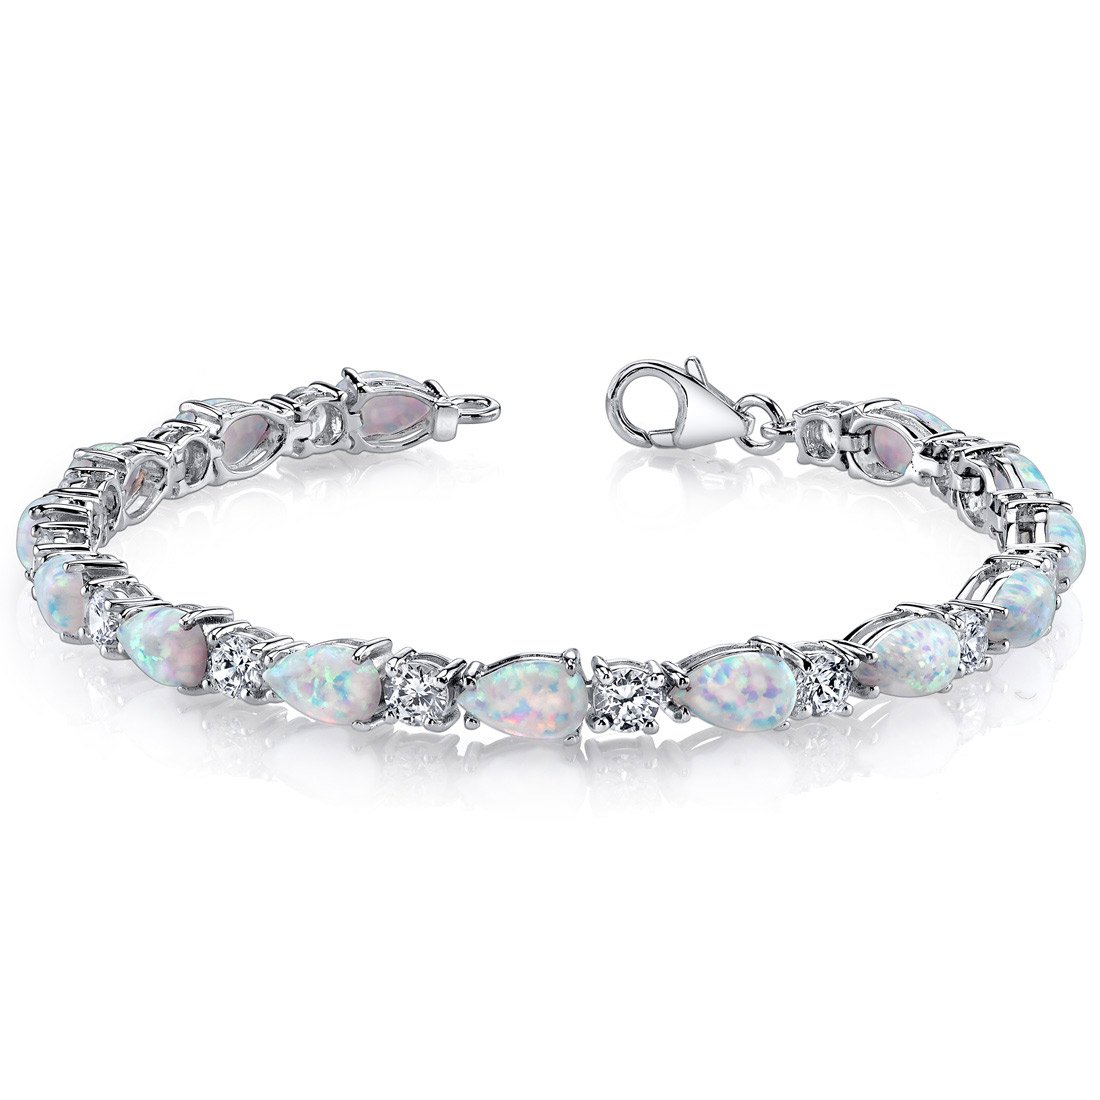 Peora Created Opal Bracelet Sterling Silver Tear Drop 10.00 Carats by Peora